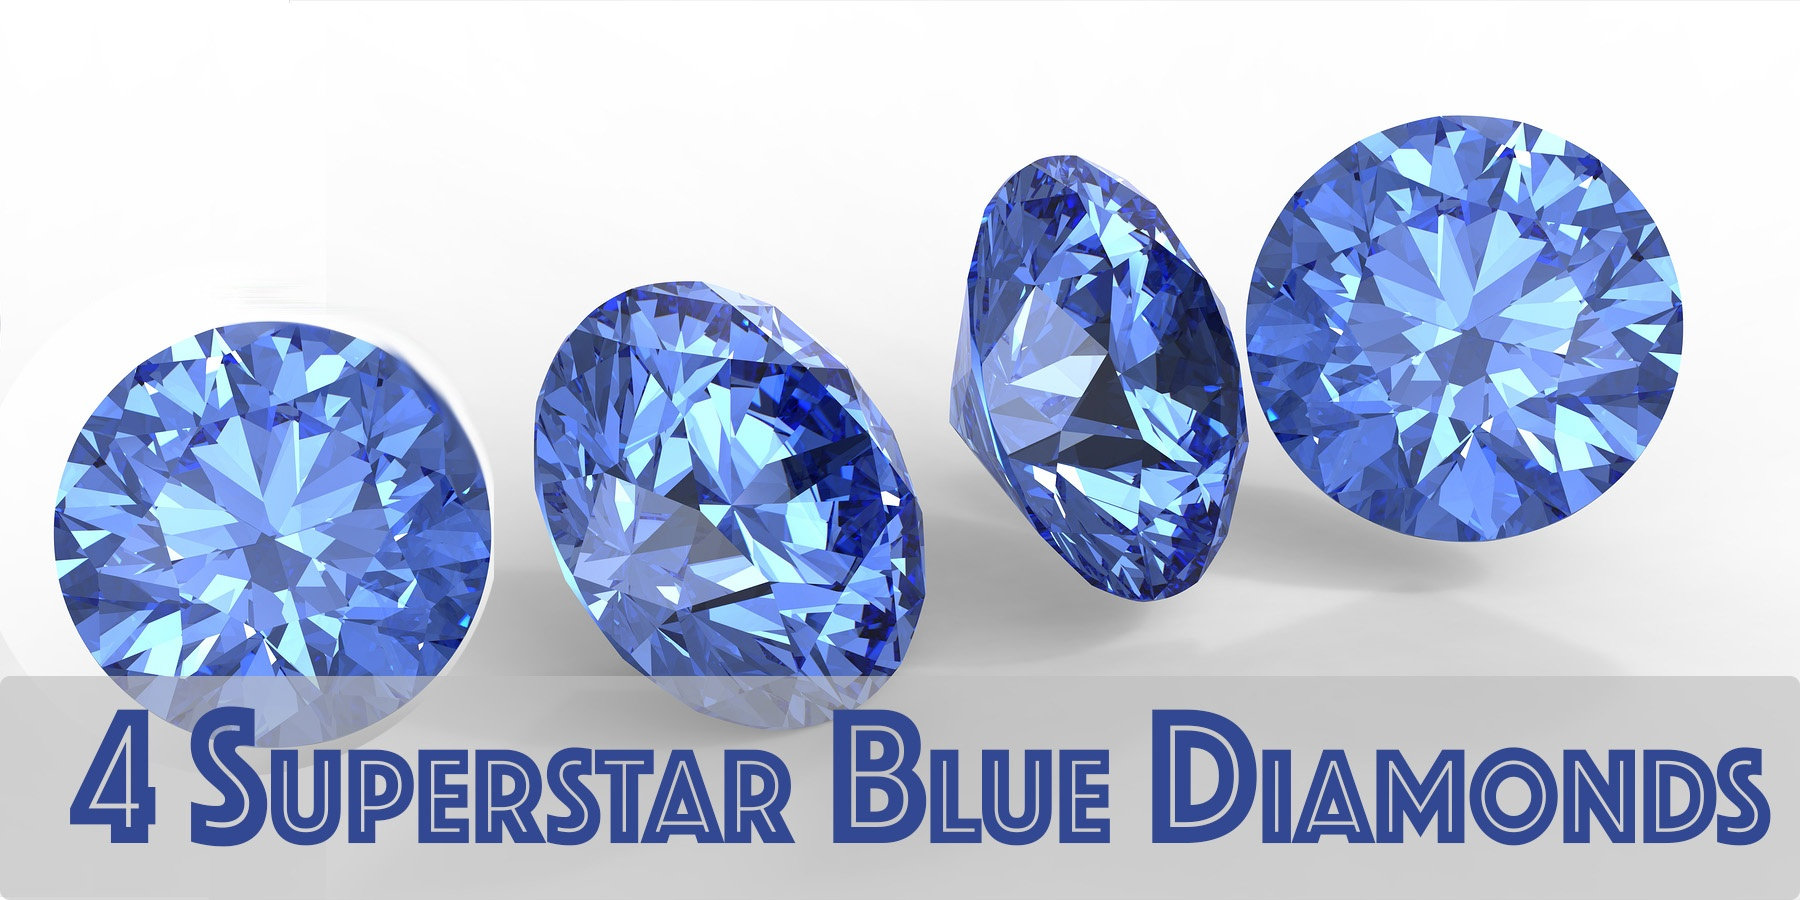 superstar_blue_diamonds.jpg